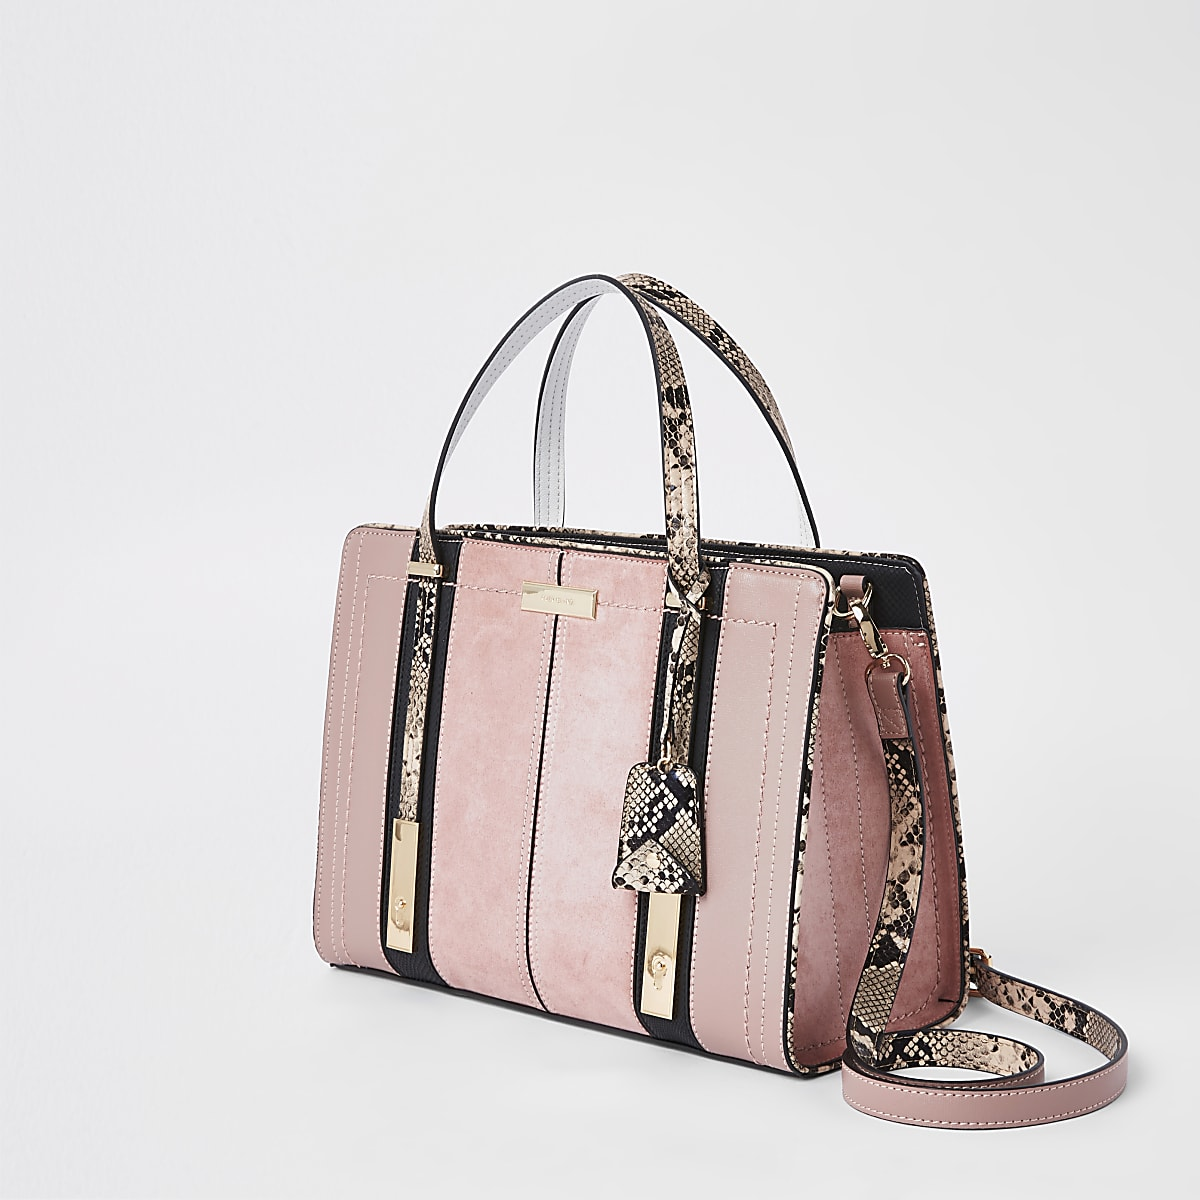 6a3d006522bbf Light pink contrast snake panel tote bag - Shopper & Tote Bags ...